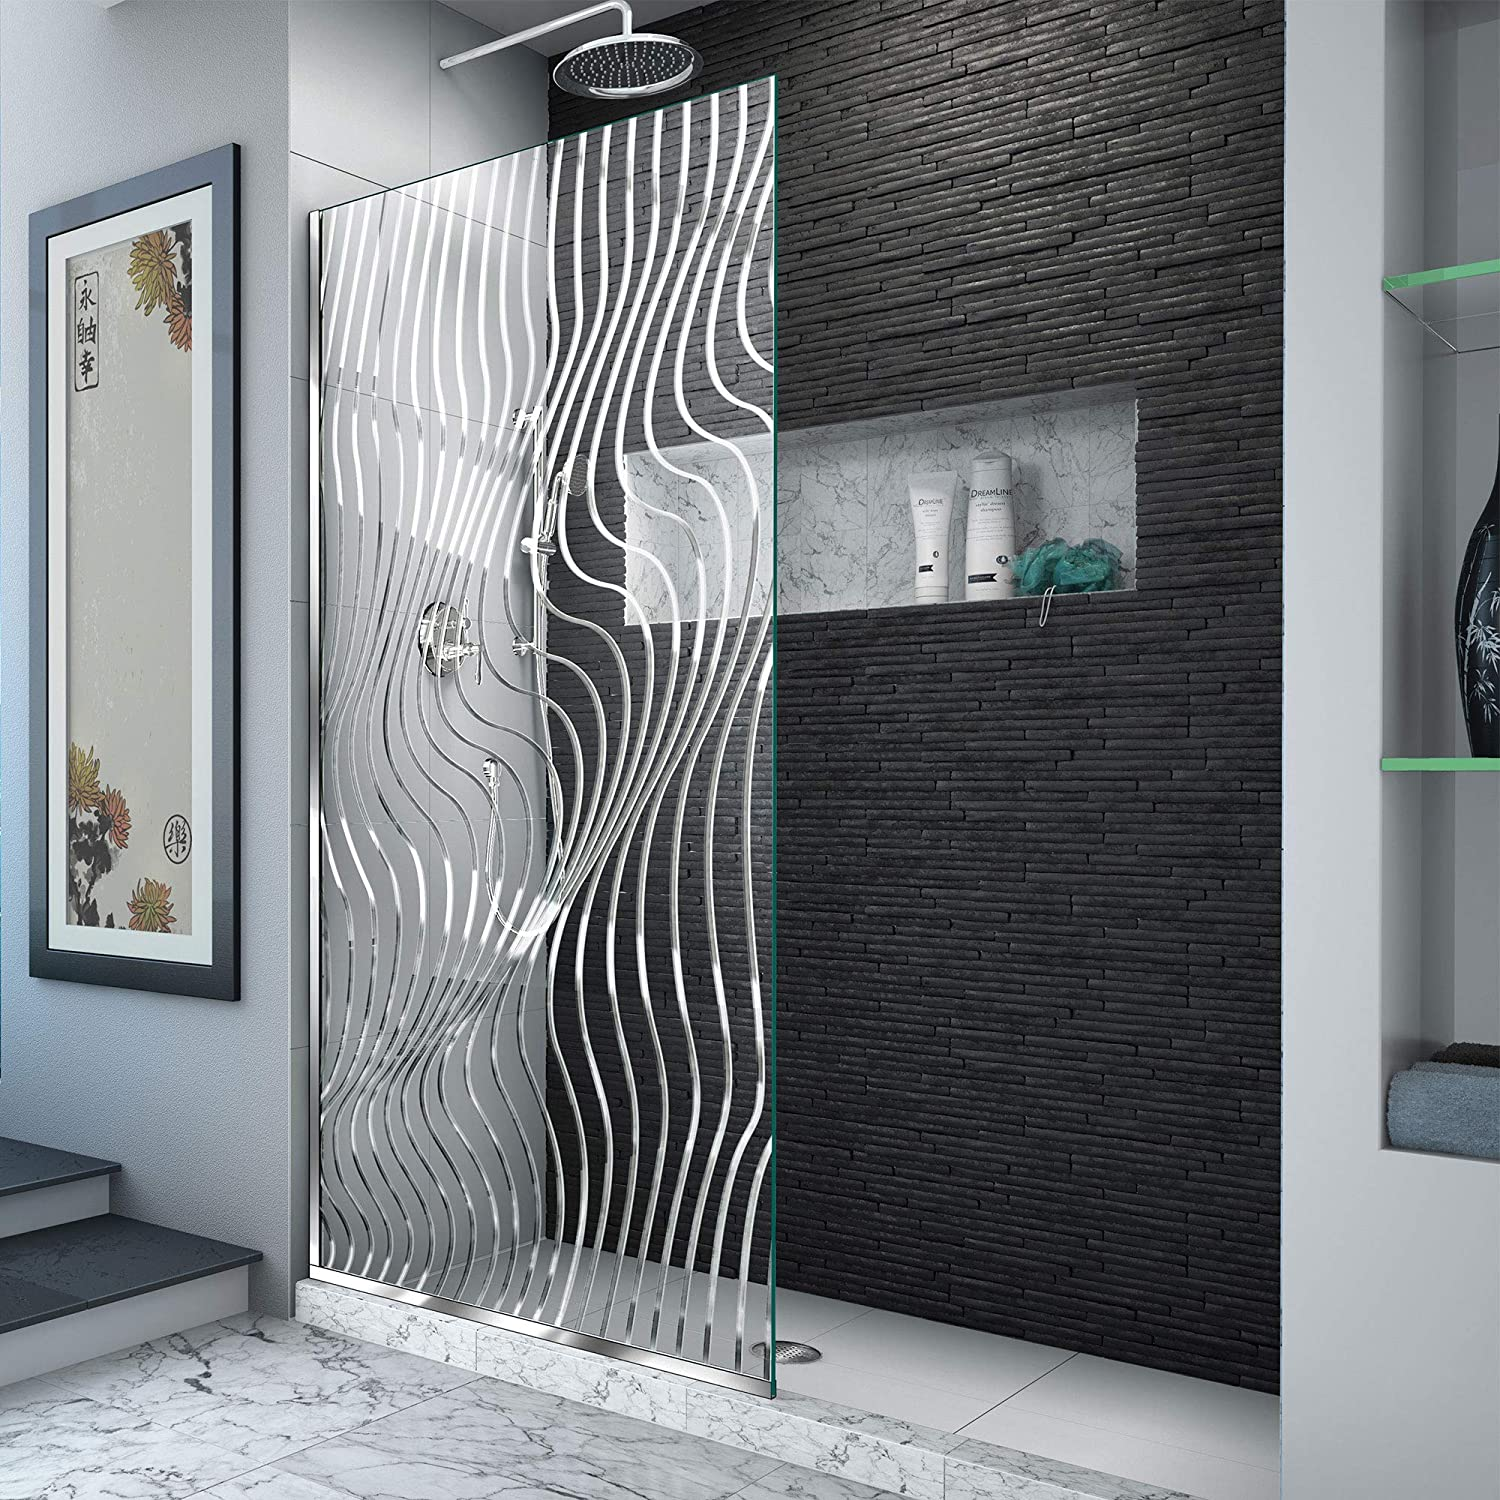 DreamLine D3234721M11-08 Platinum Linea Surf 34 in. W x 72 in. H Single Panel Frameless Shower Screen in Polished Stainless Steel